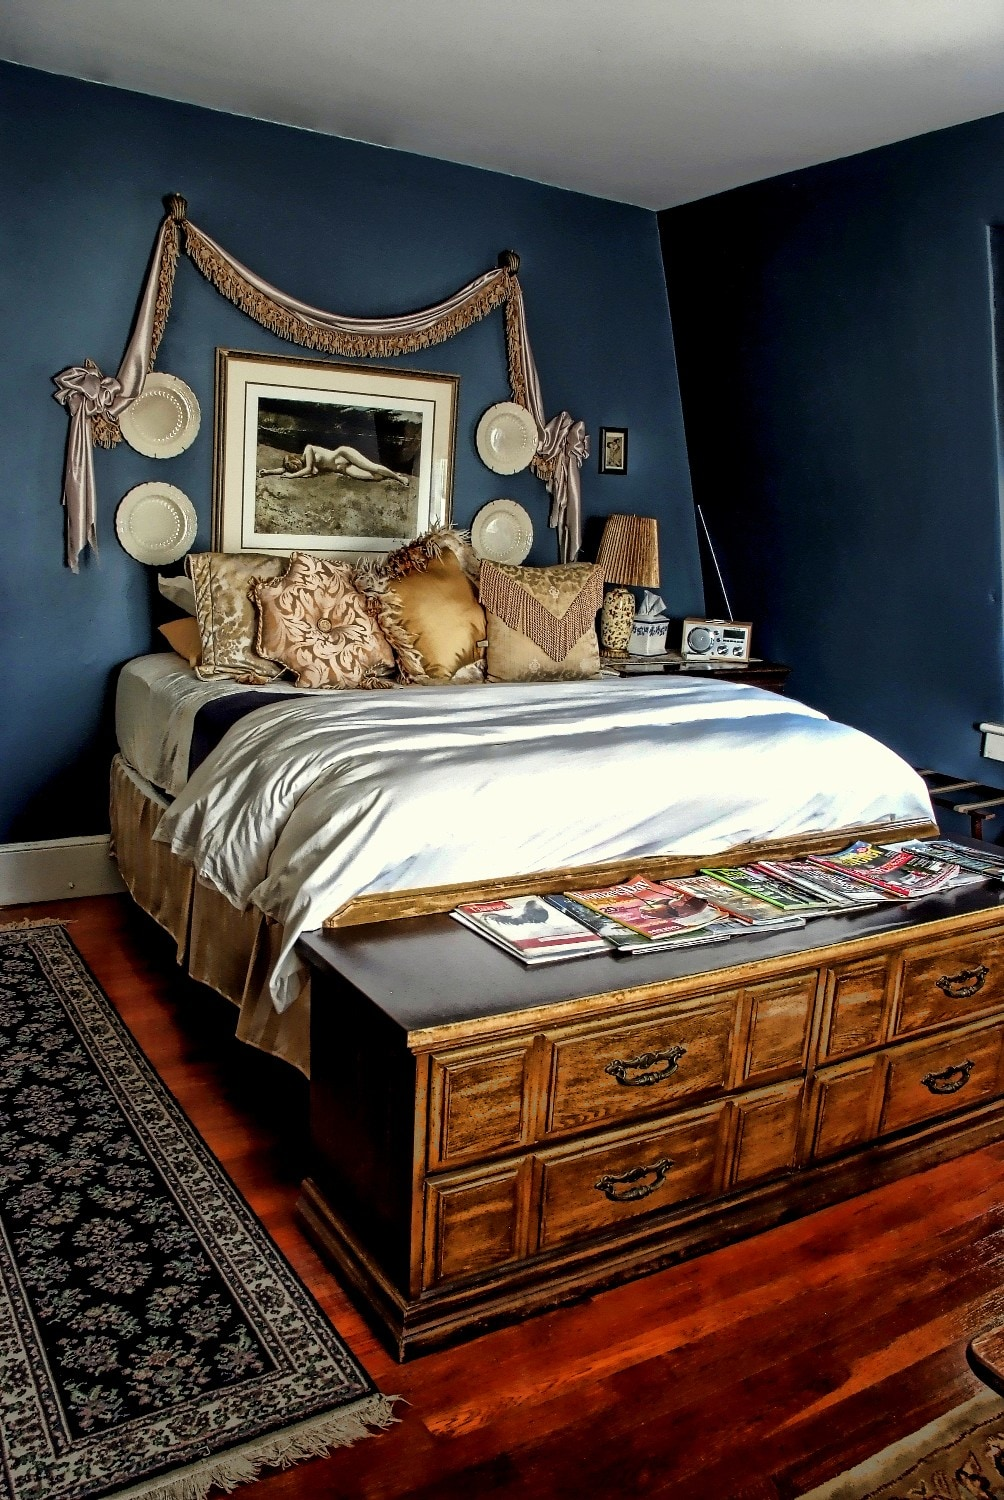 Freud Suite offers a plush, yet firm King bedding